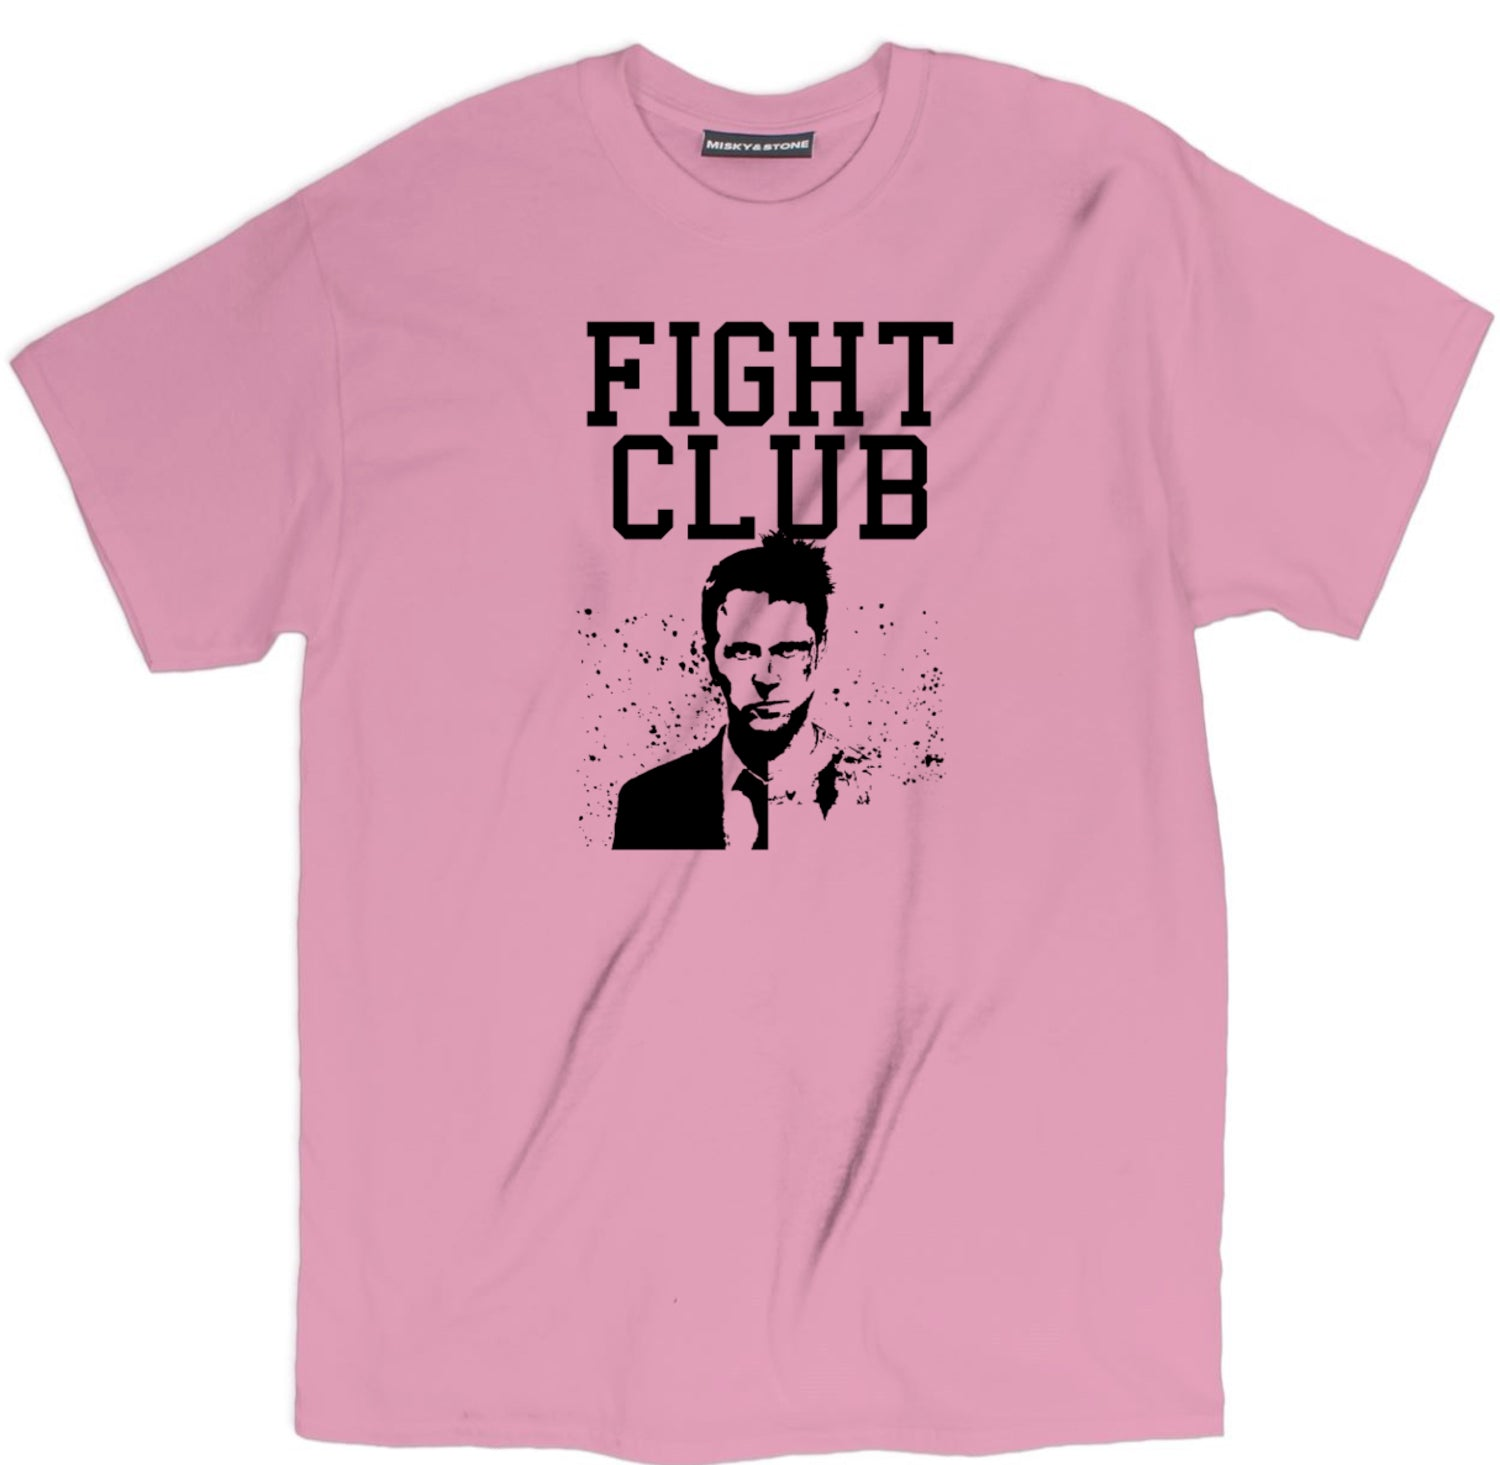 fight club tee, fight club shirt, movie fight club tee, funny shirts with sayings, funny t shirt sayings, shirts with sayings, funny t shirt quotes, t shirt quotes, tee shirts with sayings, tee shirt quotes, quote tees, hilarious t shirt sayings, funny tee shirt sayings, t shirts with sayings on them,